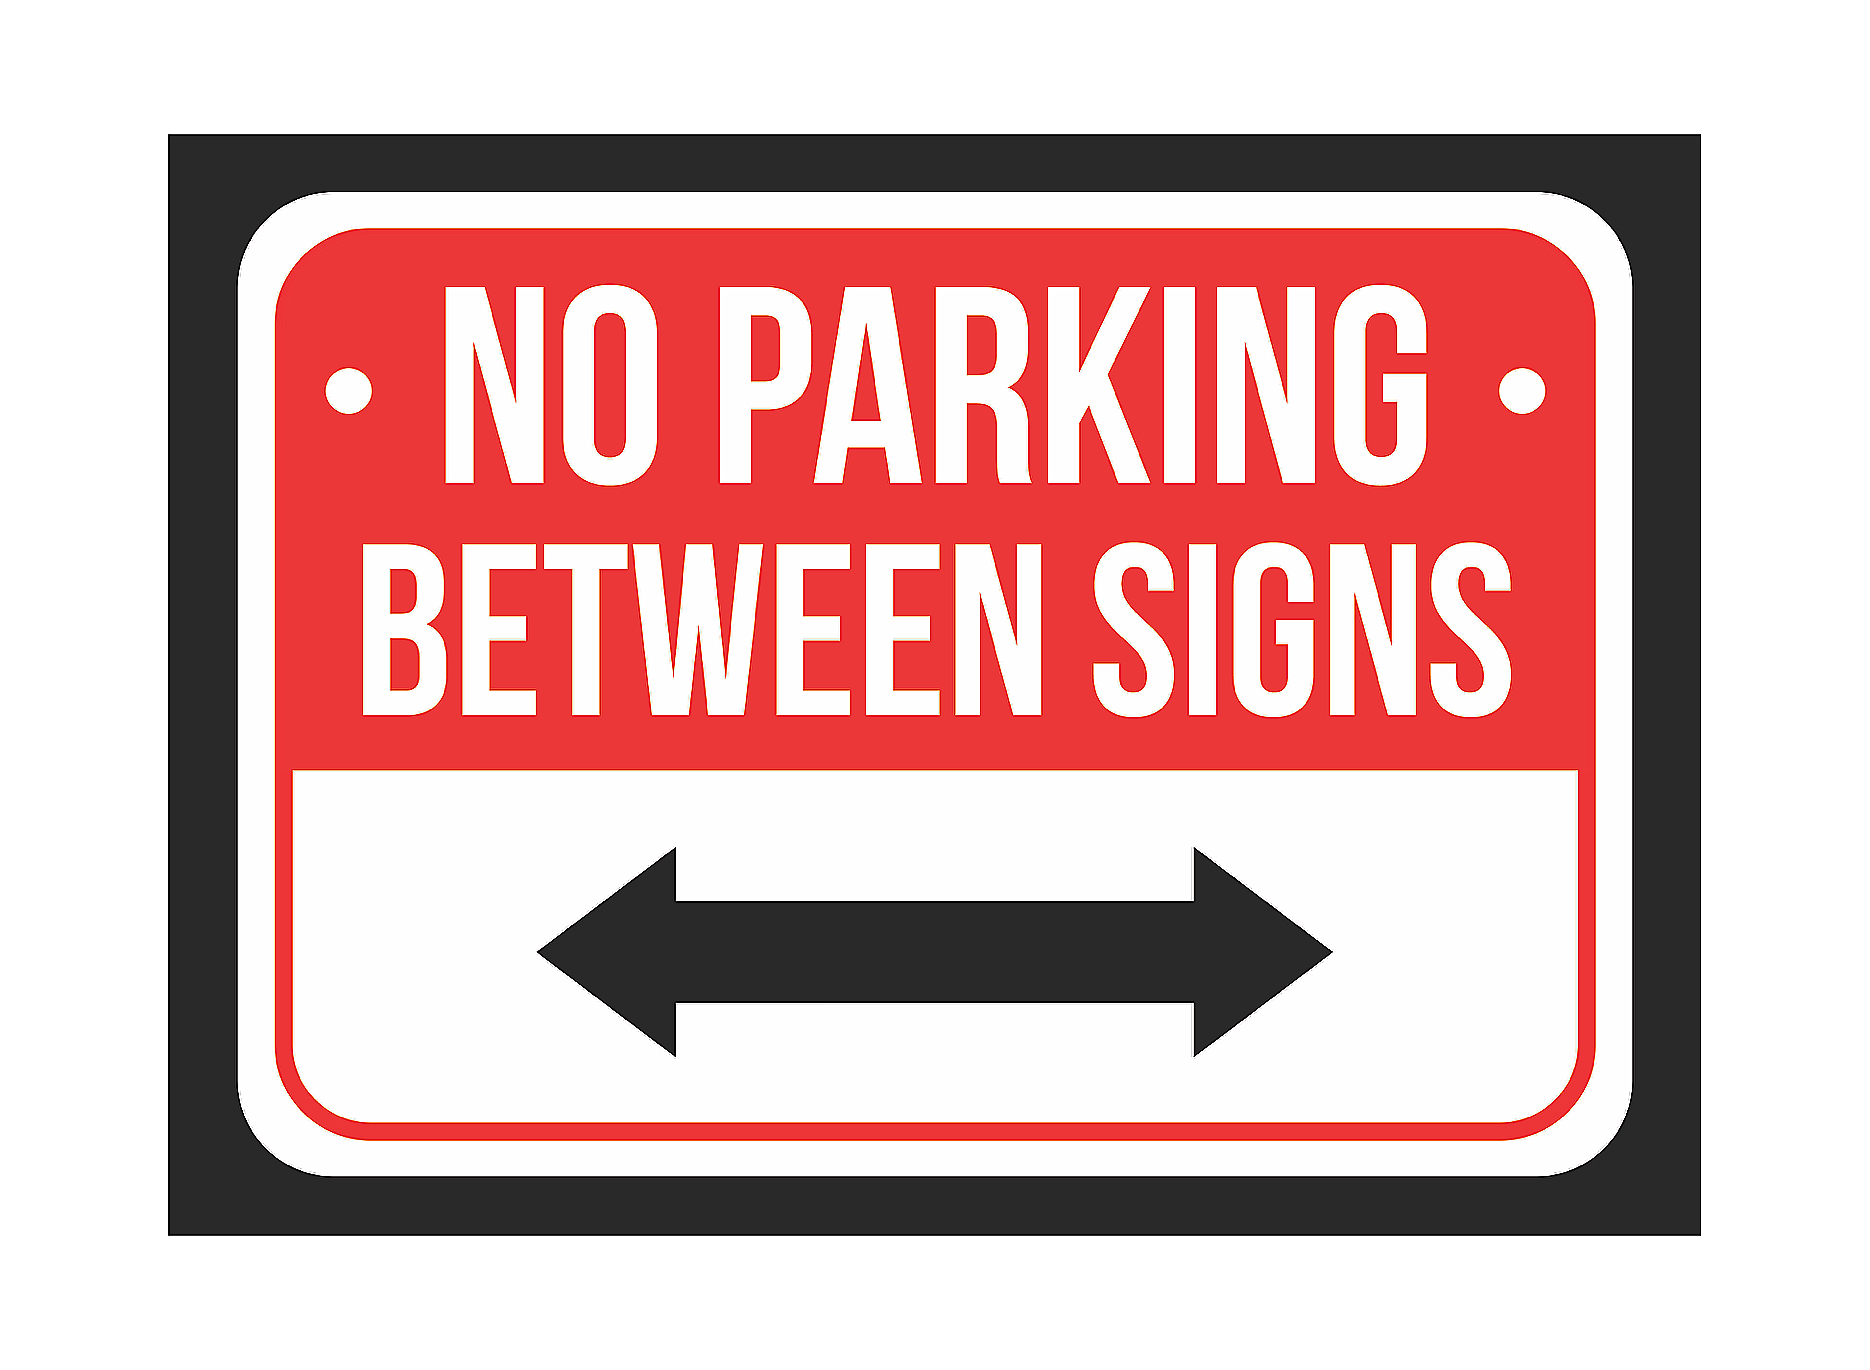 - No Parking Between Double Arrow Print Red, White And Black Notice